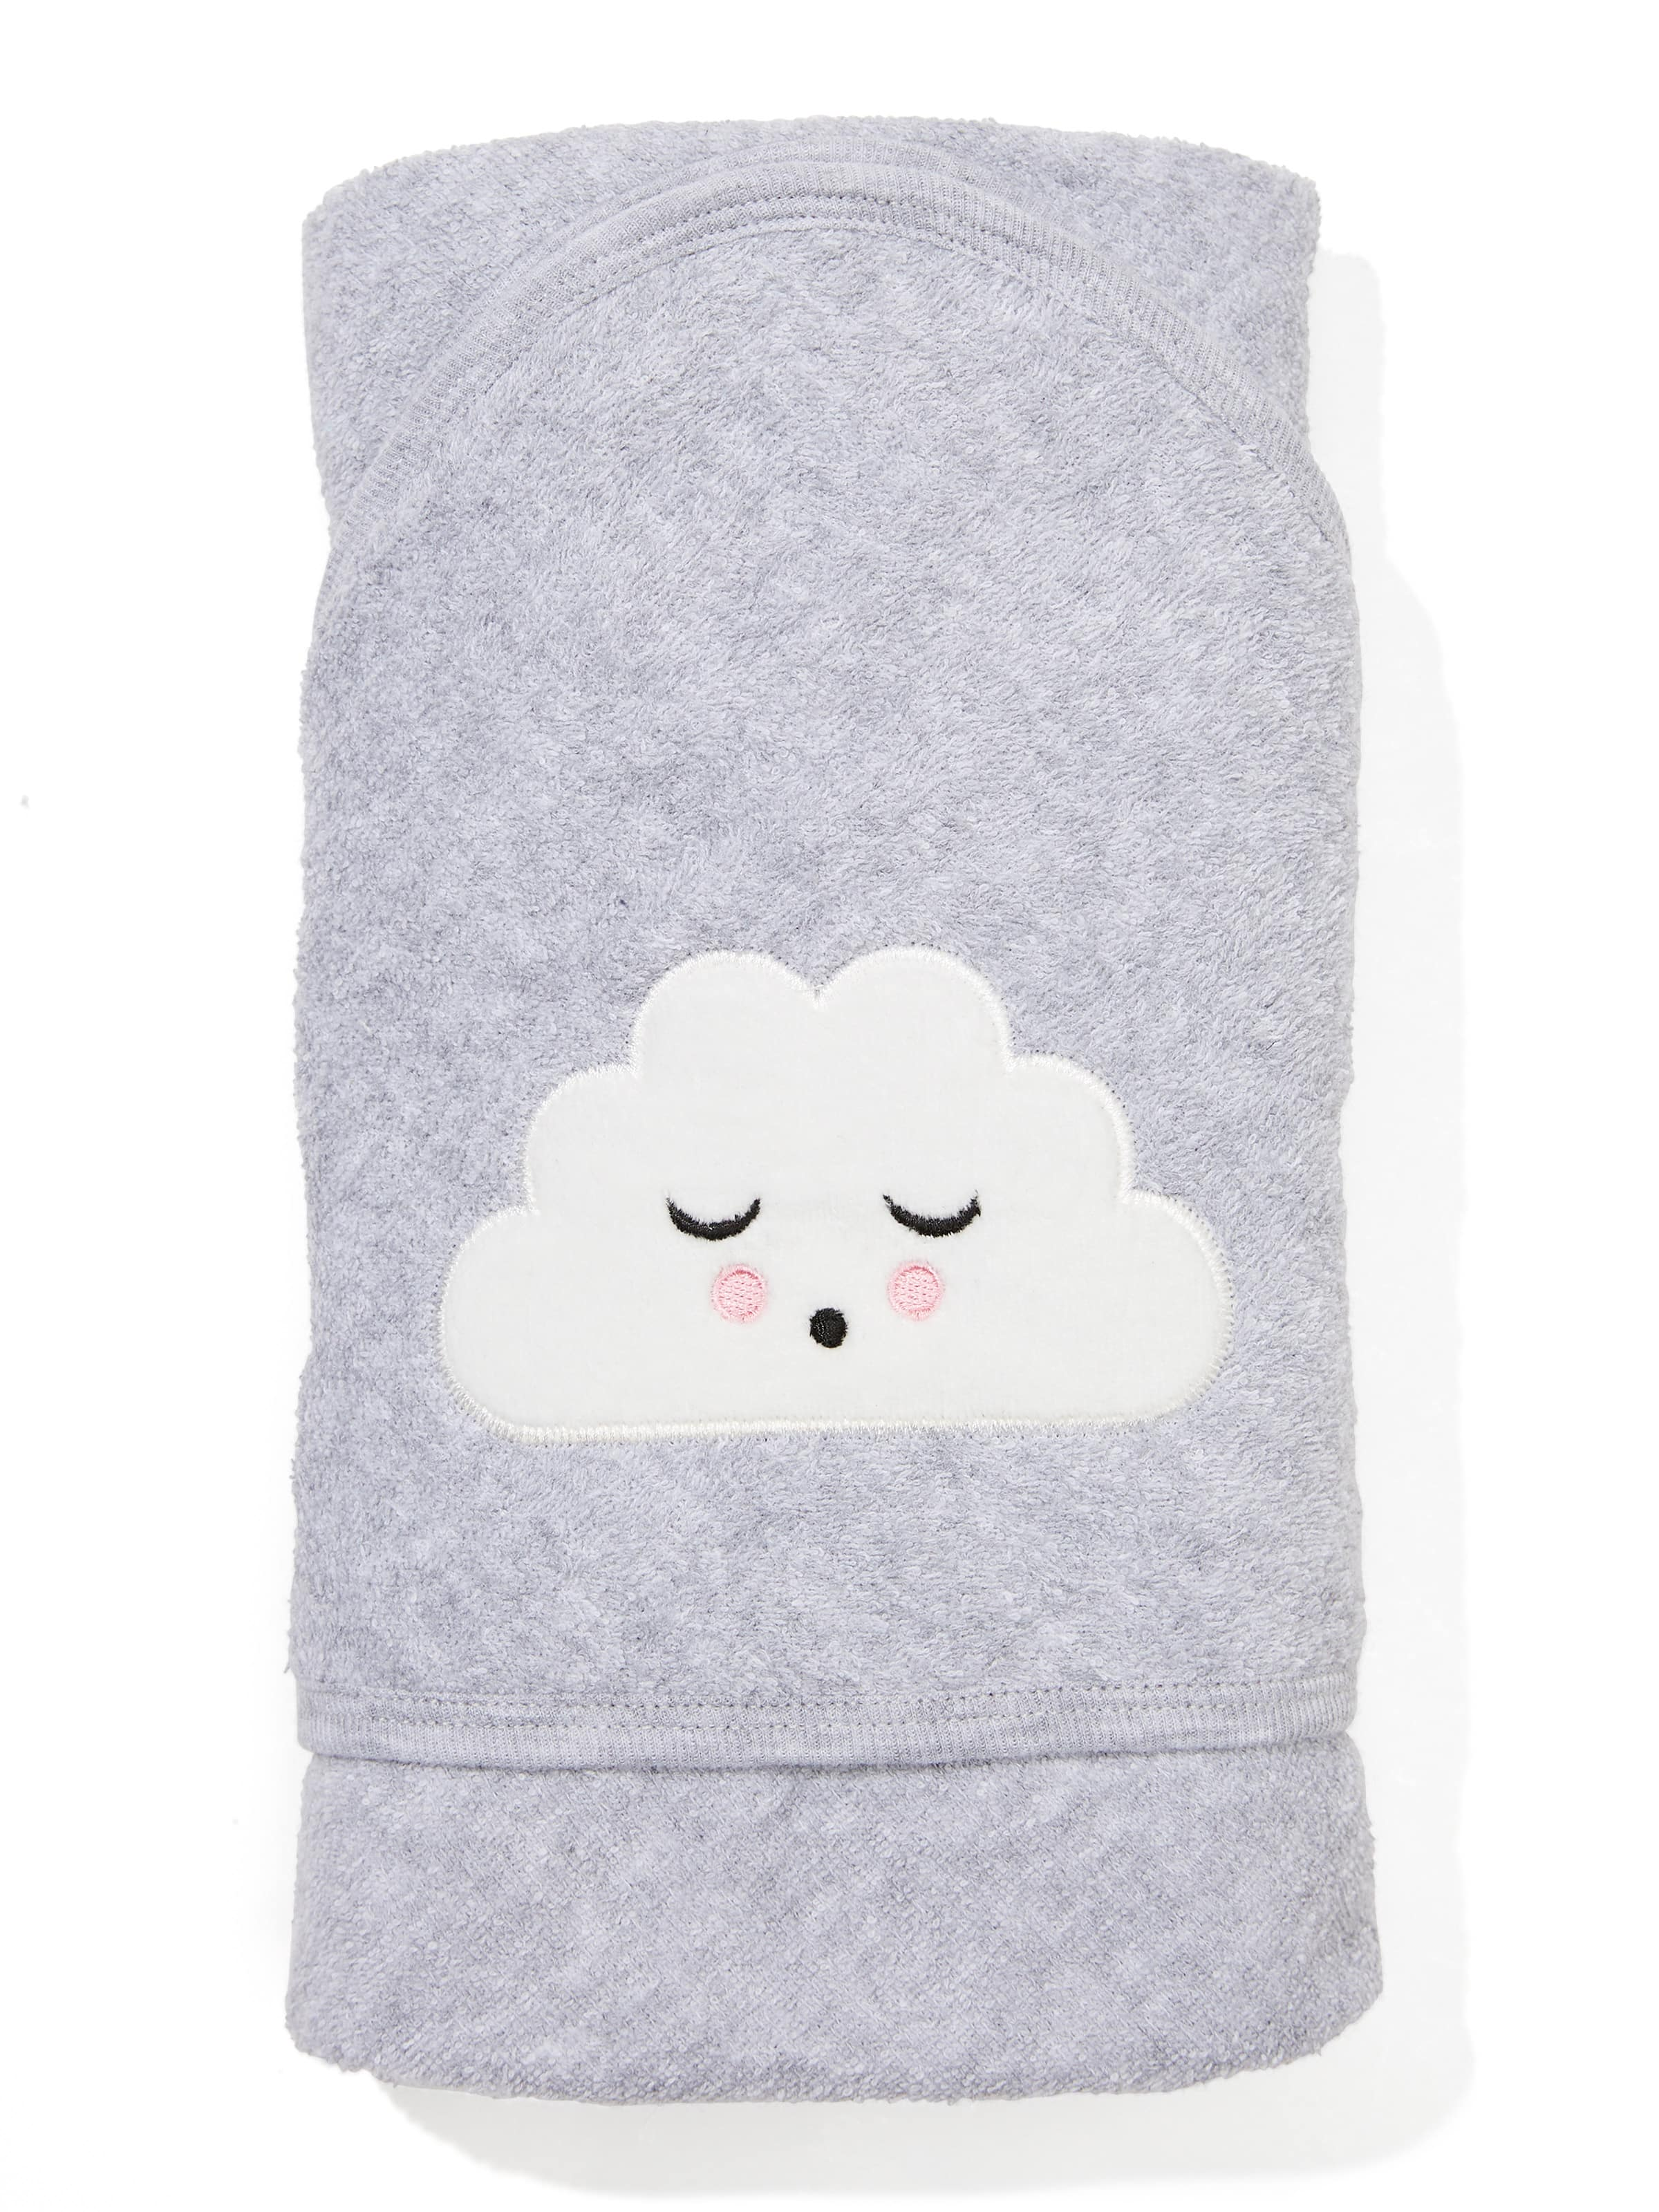 Baby Gift Soft Cloud Towel